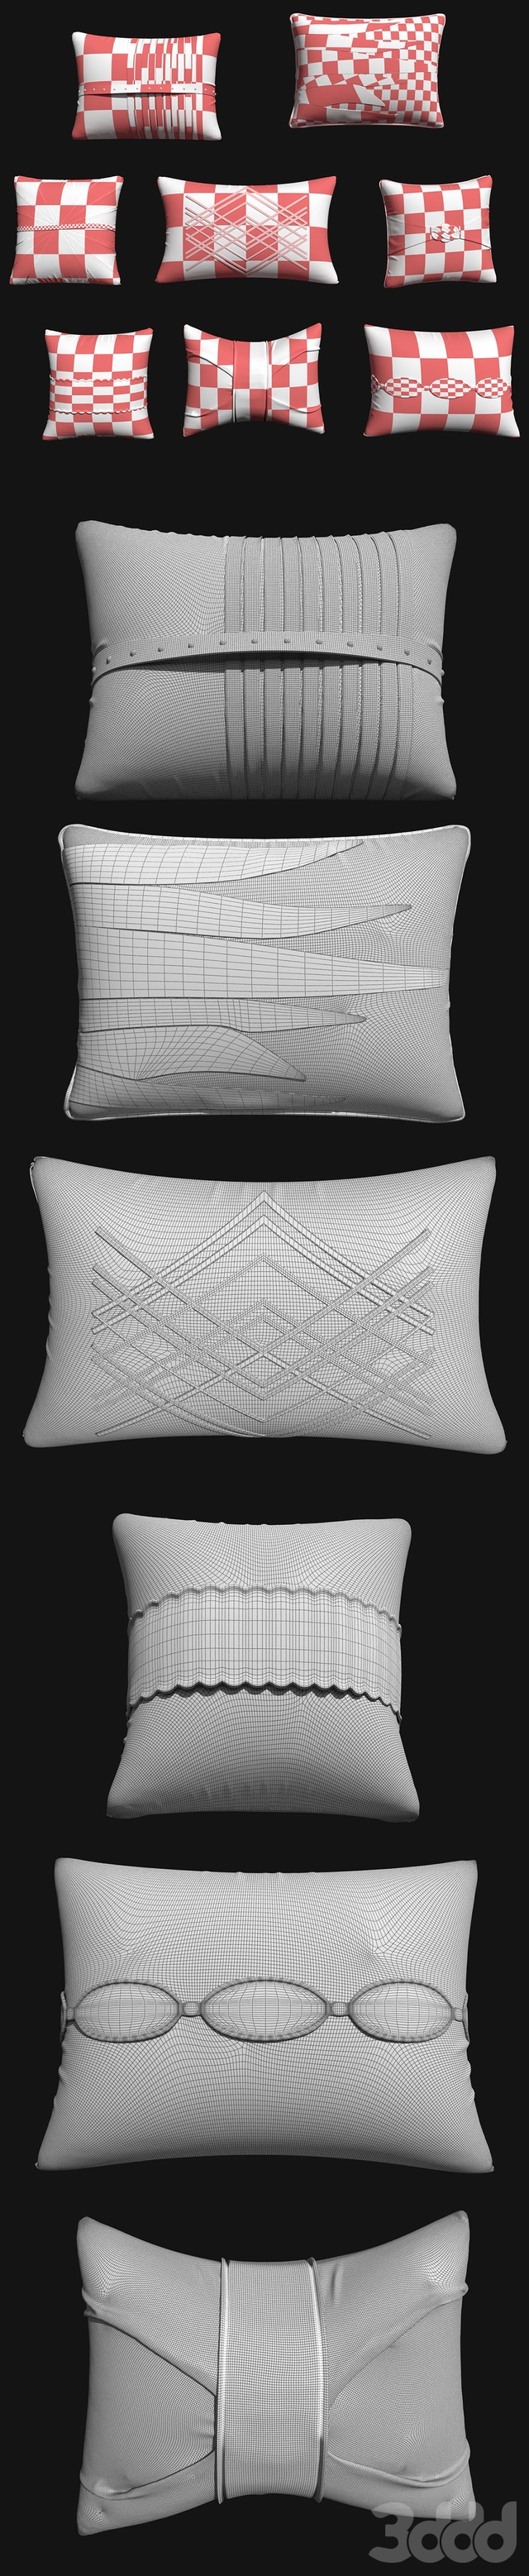 Aiveen Daly Cushions Set